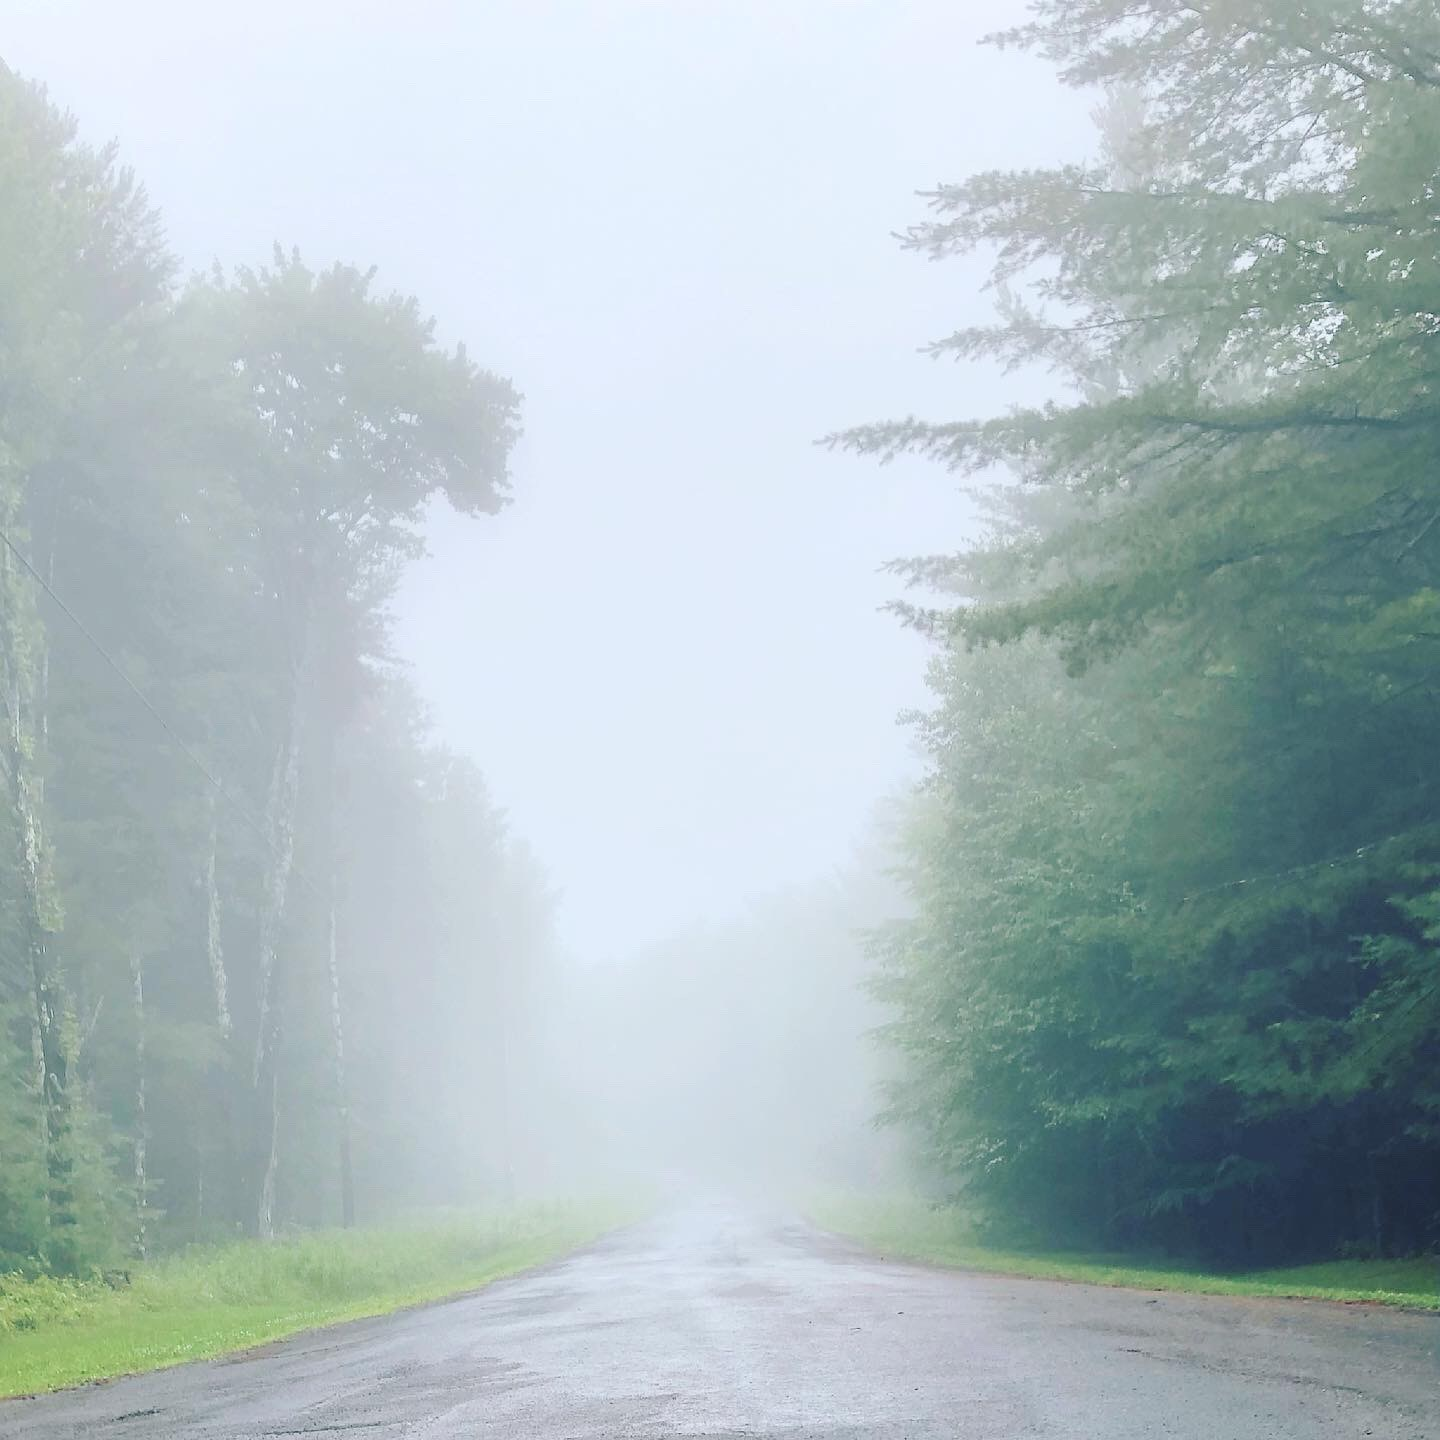 tree-lined street on a foggy day